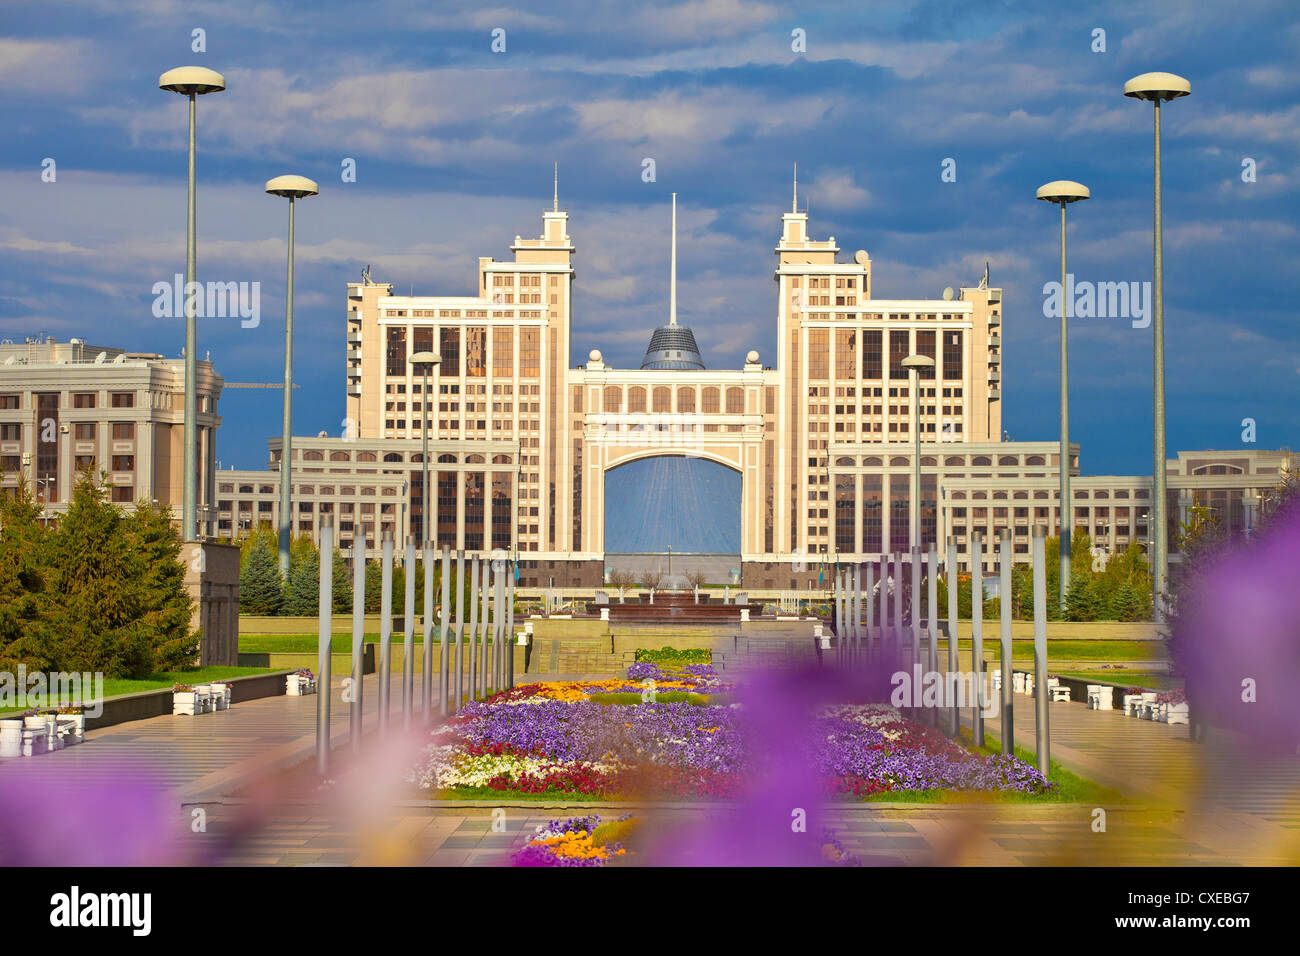 KazMunaiGas building, with Khan Shatyr shopping and entertainment center behind, Astana, Kazakhstan - Stock Image